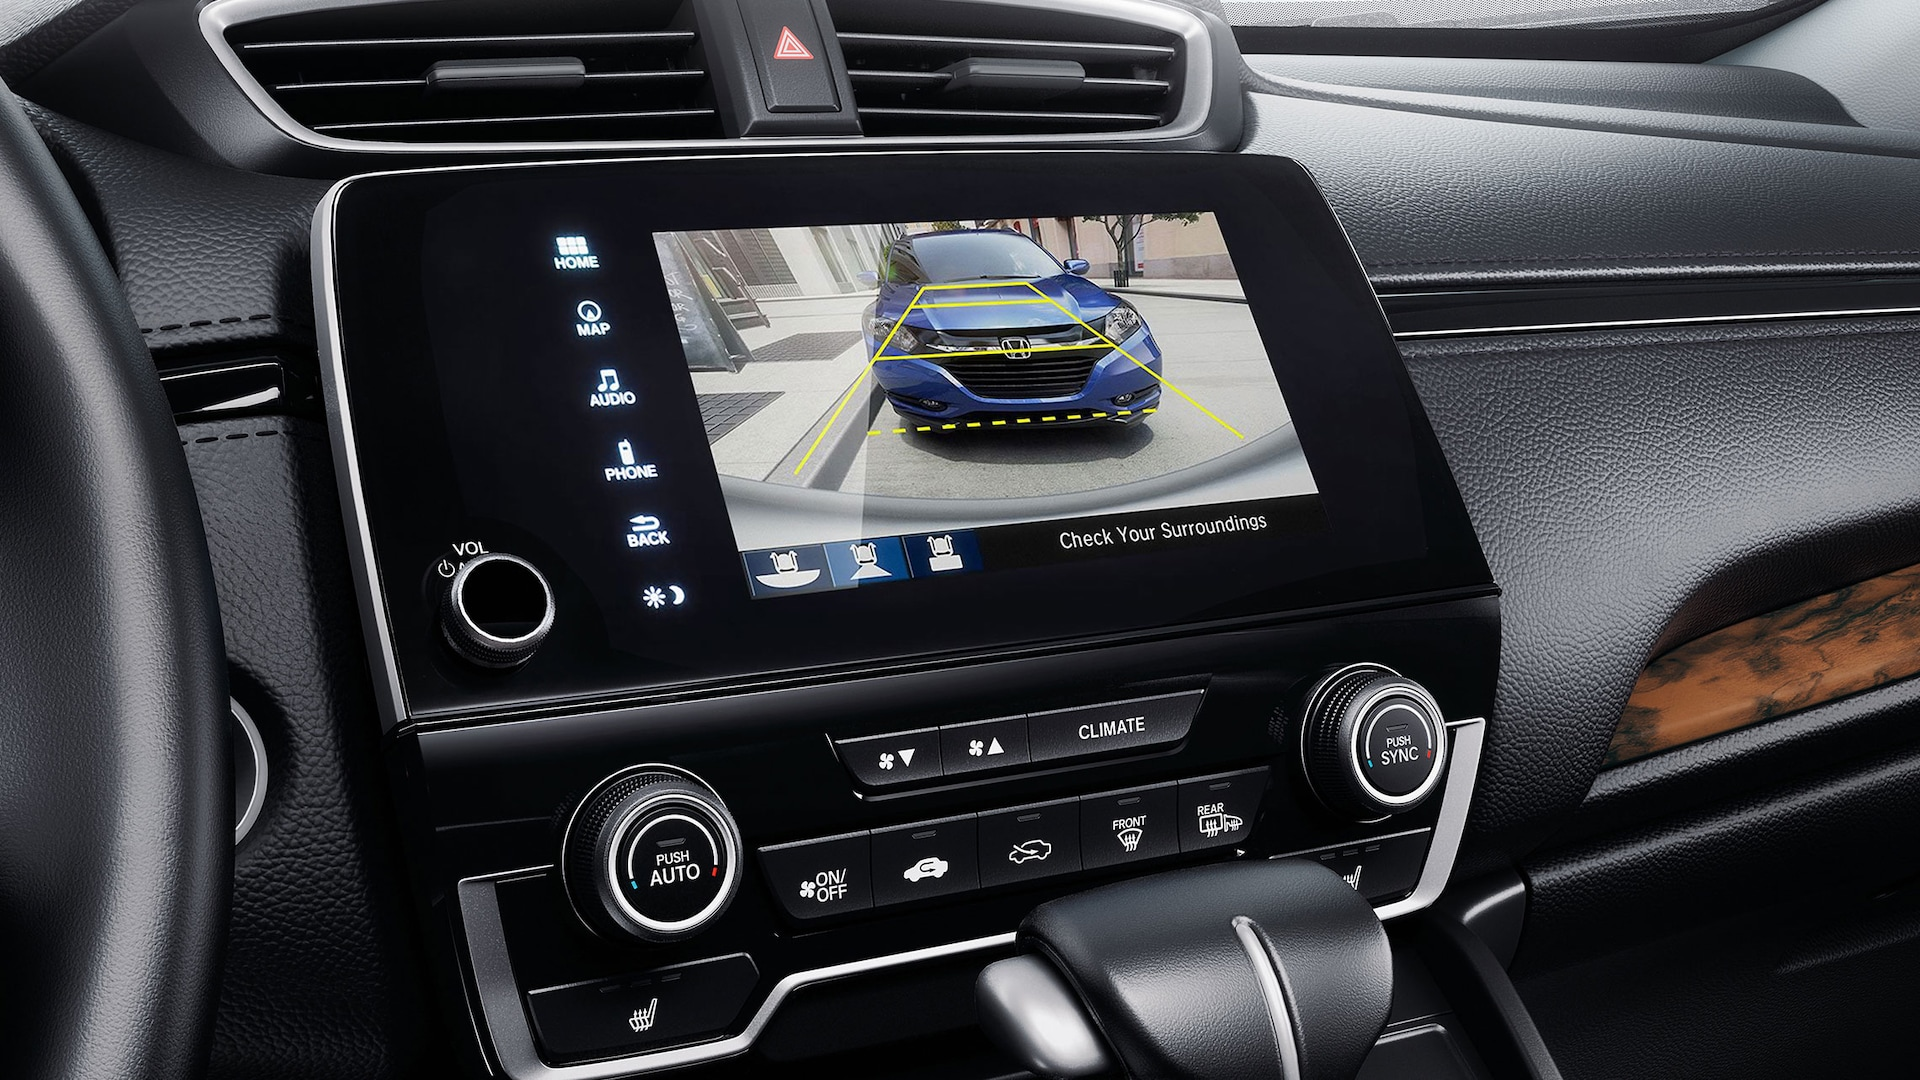 Display Audio touch-screen detail in the 2020 Honda CR-V.